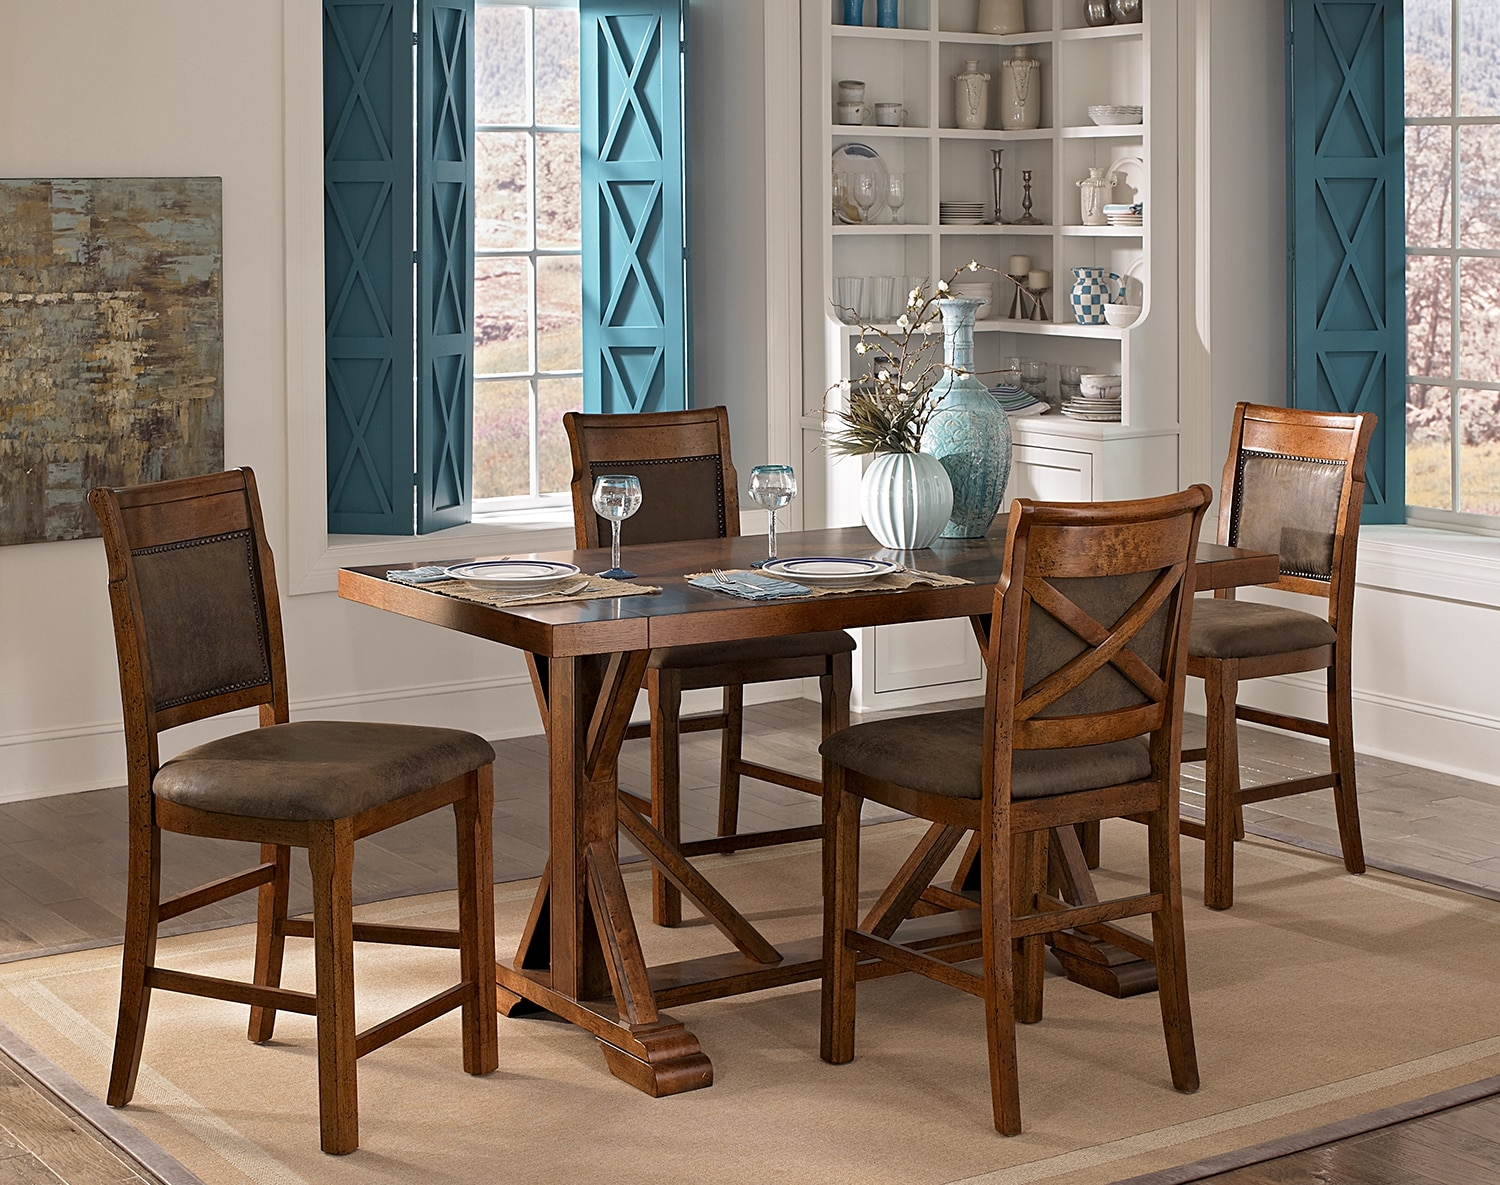 Dining Room Furniture - The Greenfield Walnut Collection - Counter-Height Stool